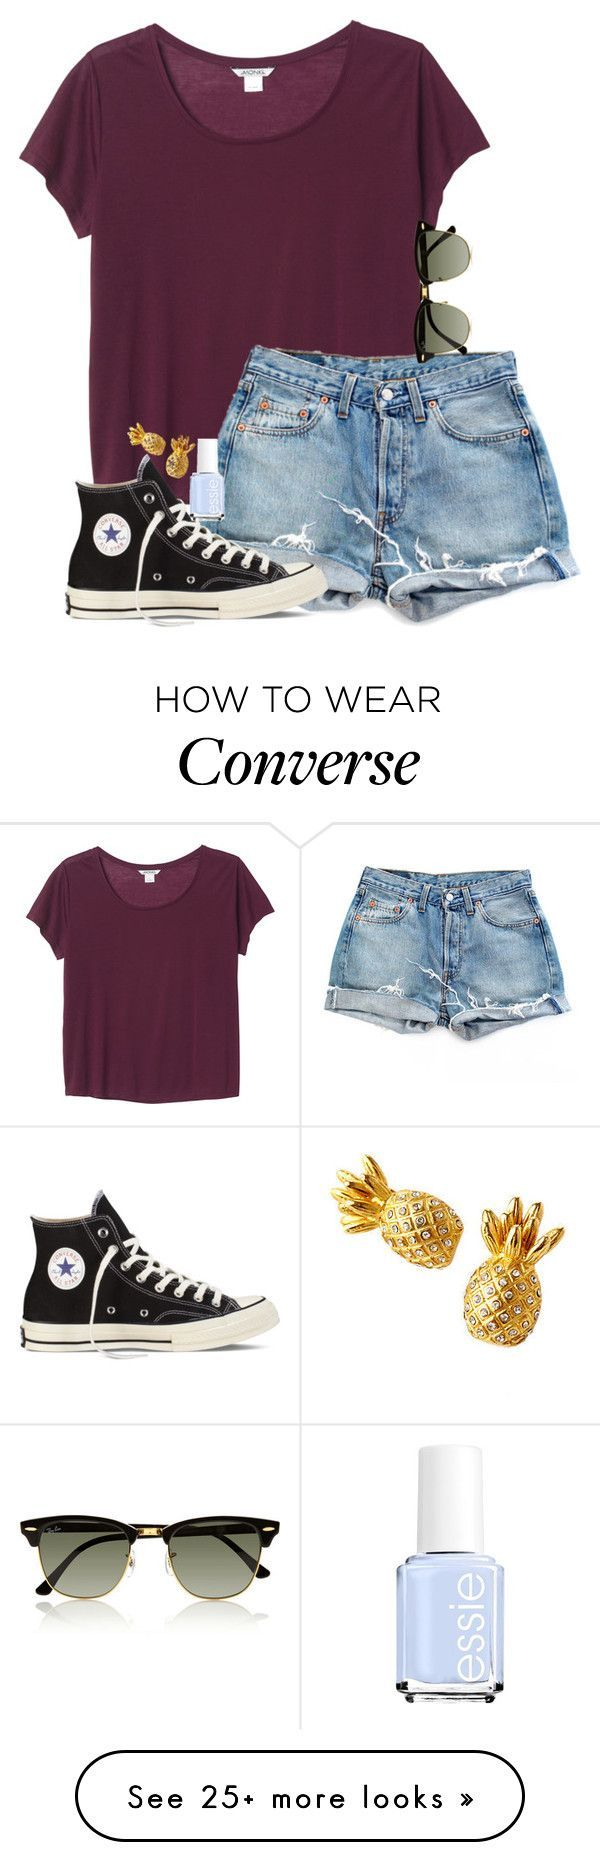 """""""Summer Vibes✌️"""" by daydreammmm on Polyvore featuring Monki, Levi's, Converse, Ray-Ban and Essie"""